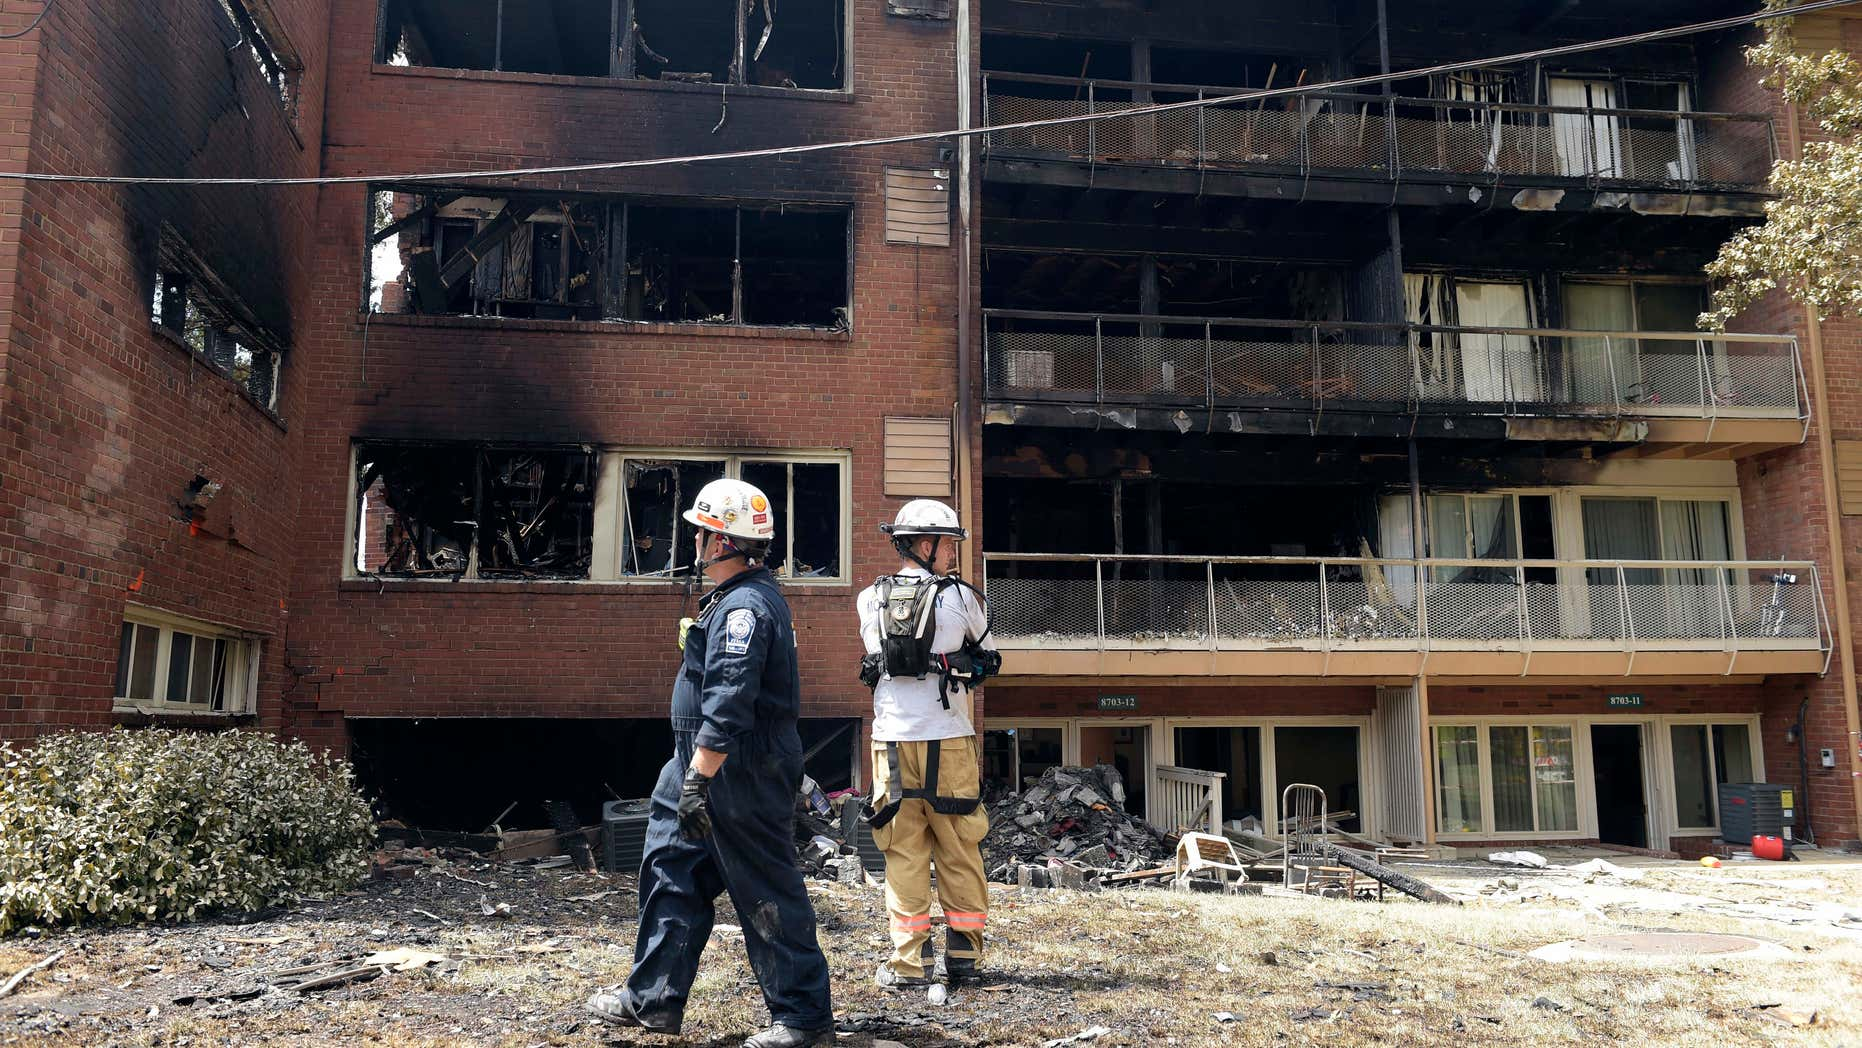 FILE - In this Thursday, Aug. 11, 2016, file photo, emergency personnel view the scene of an apartment building fire in Silver Spring, Md.